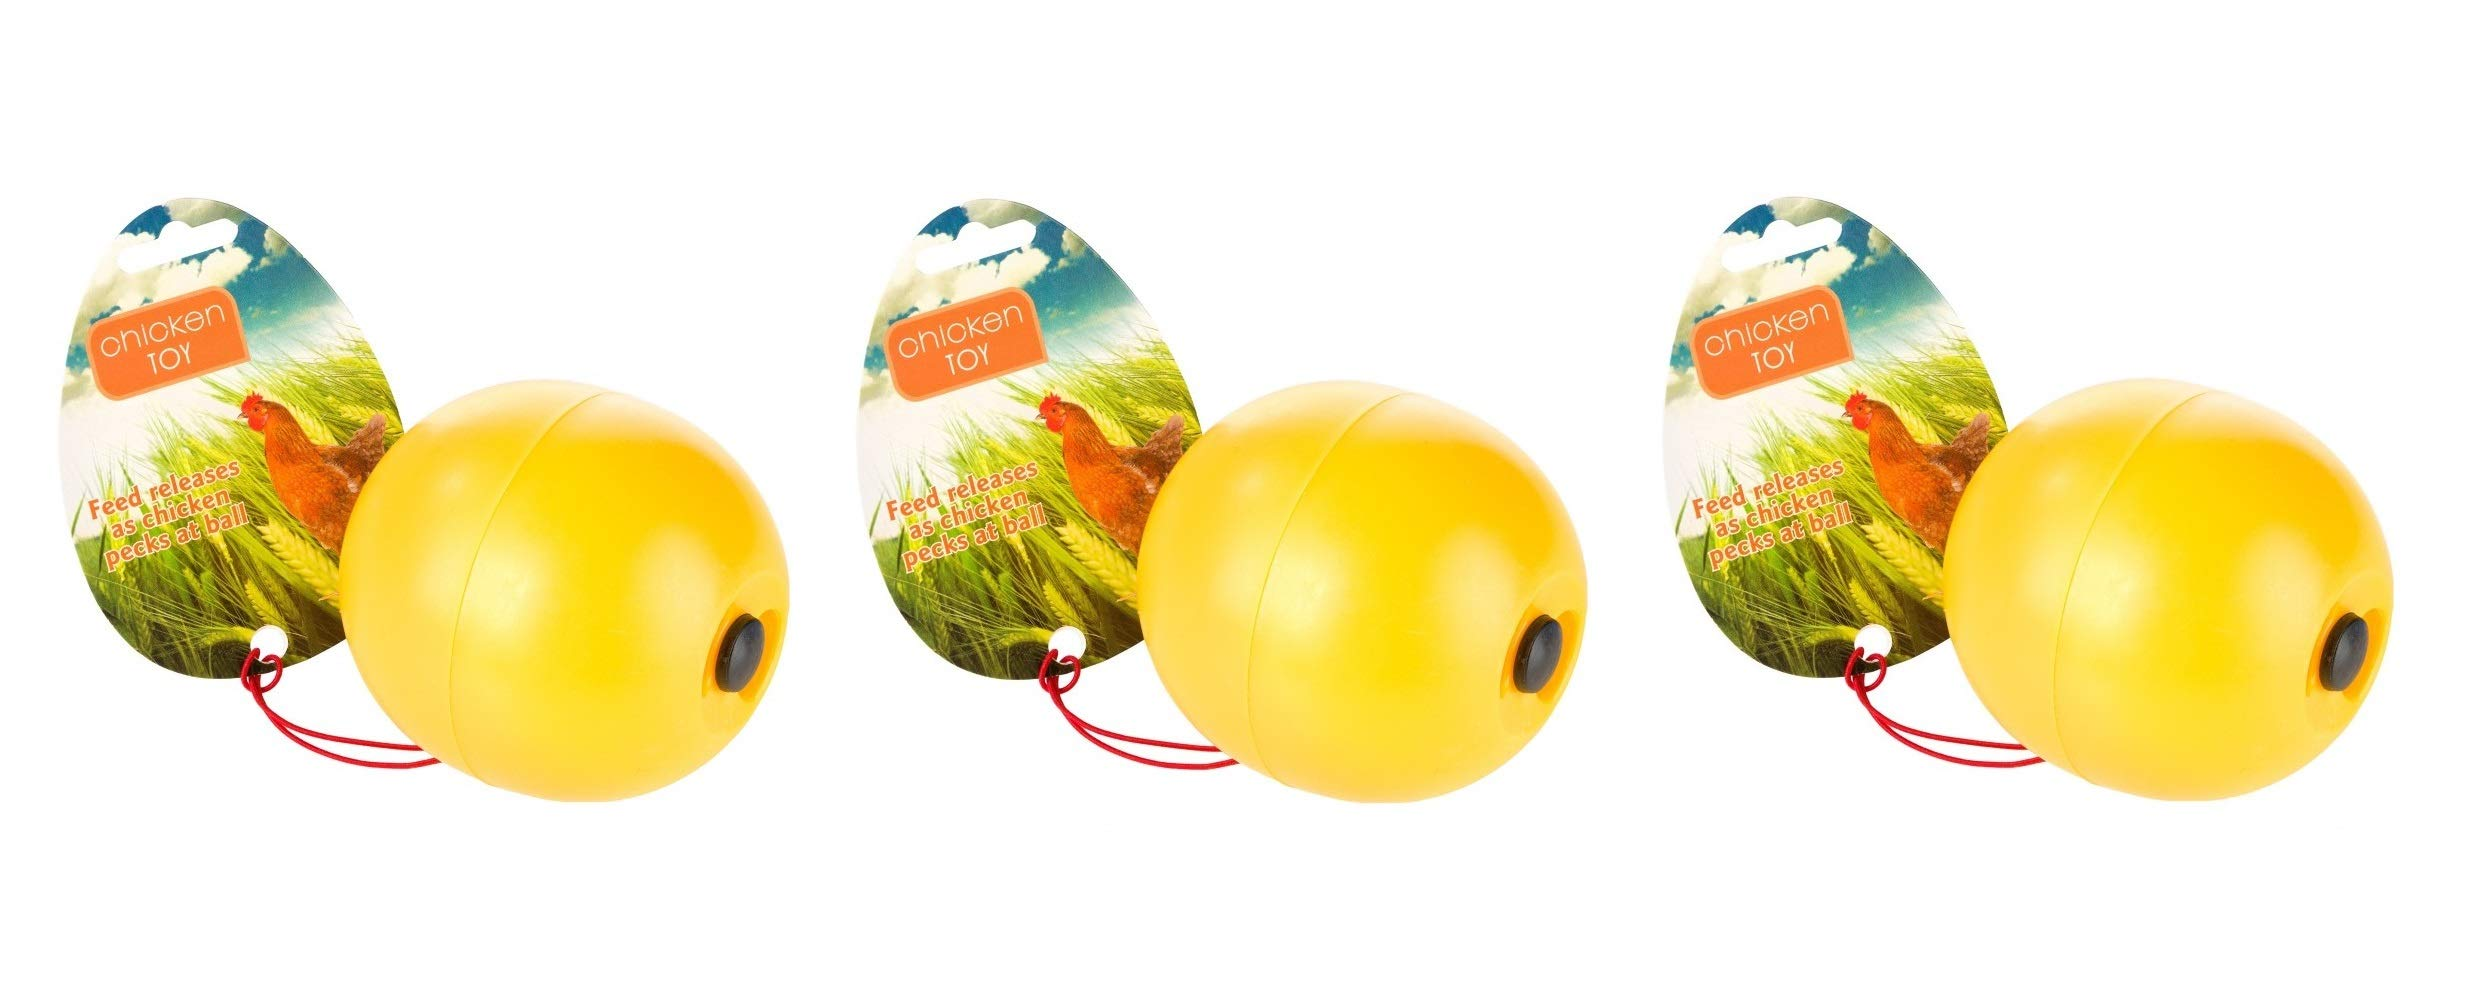 Manna Pro 3 Pack of Chicken Toys, Balls Release Feed as Chickens Peck by Manna Pro